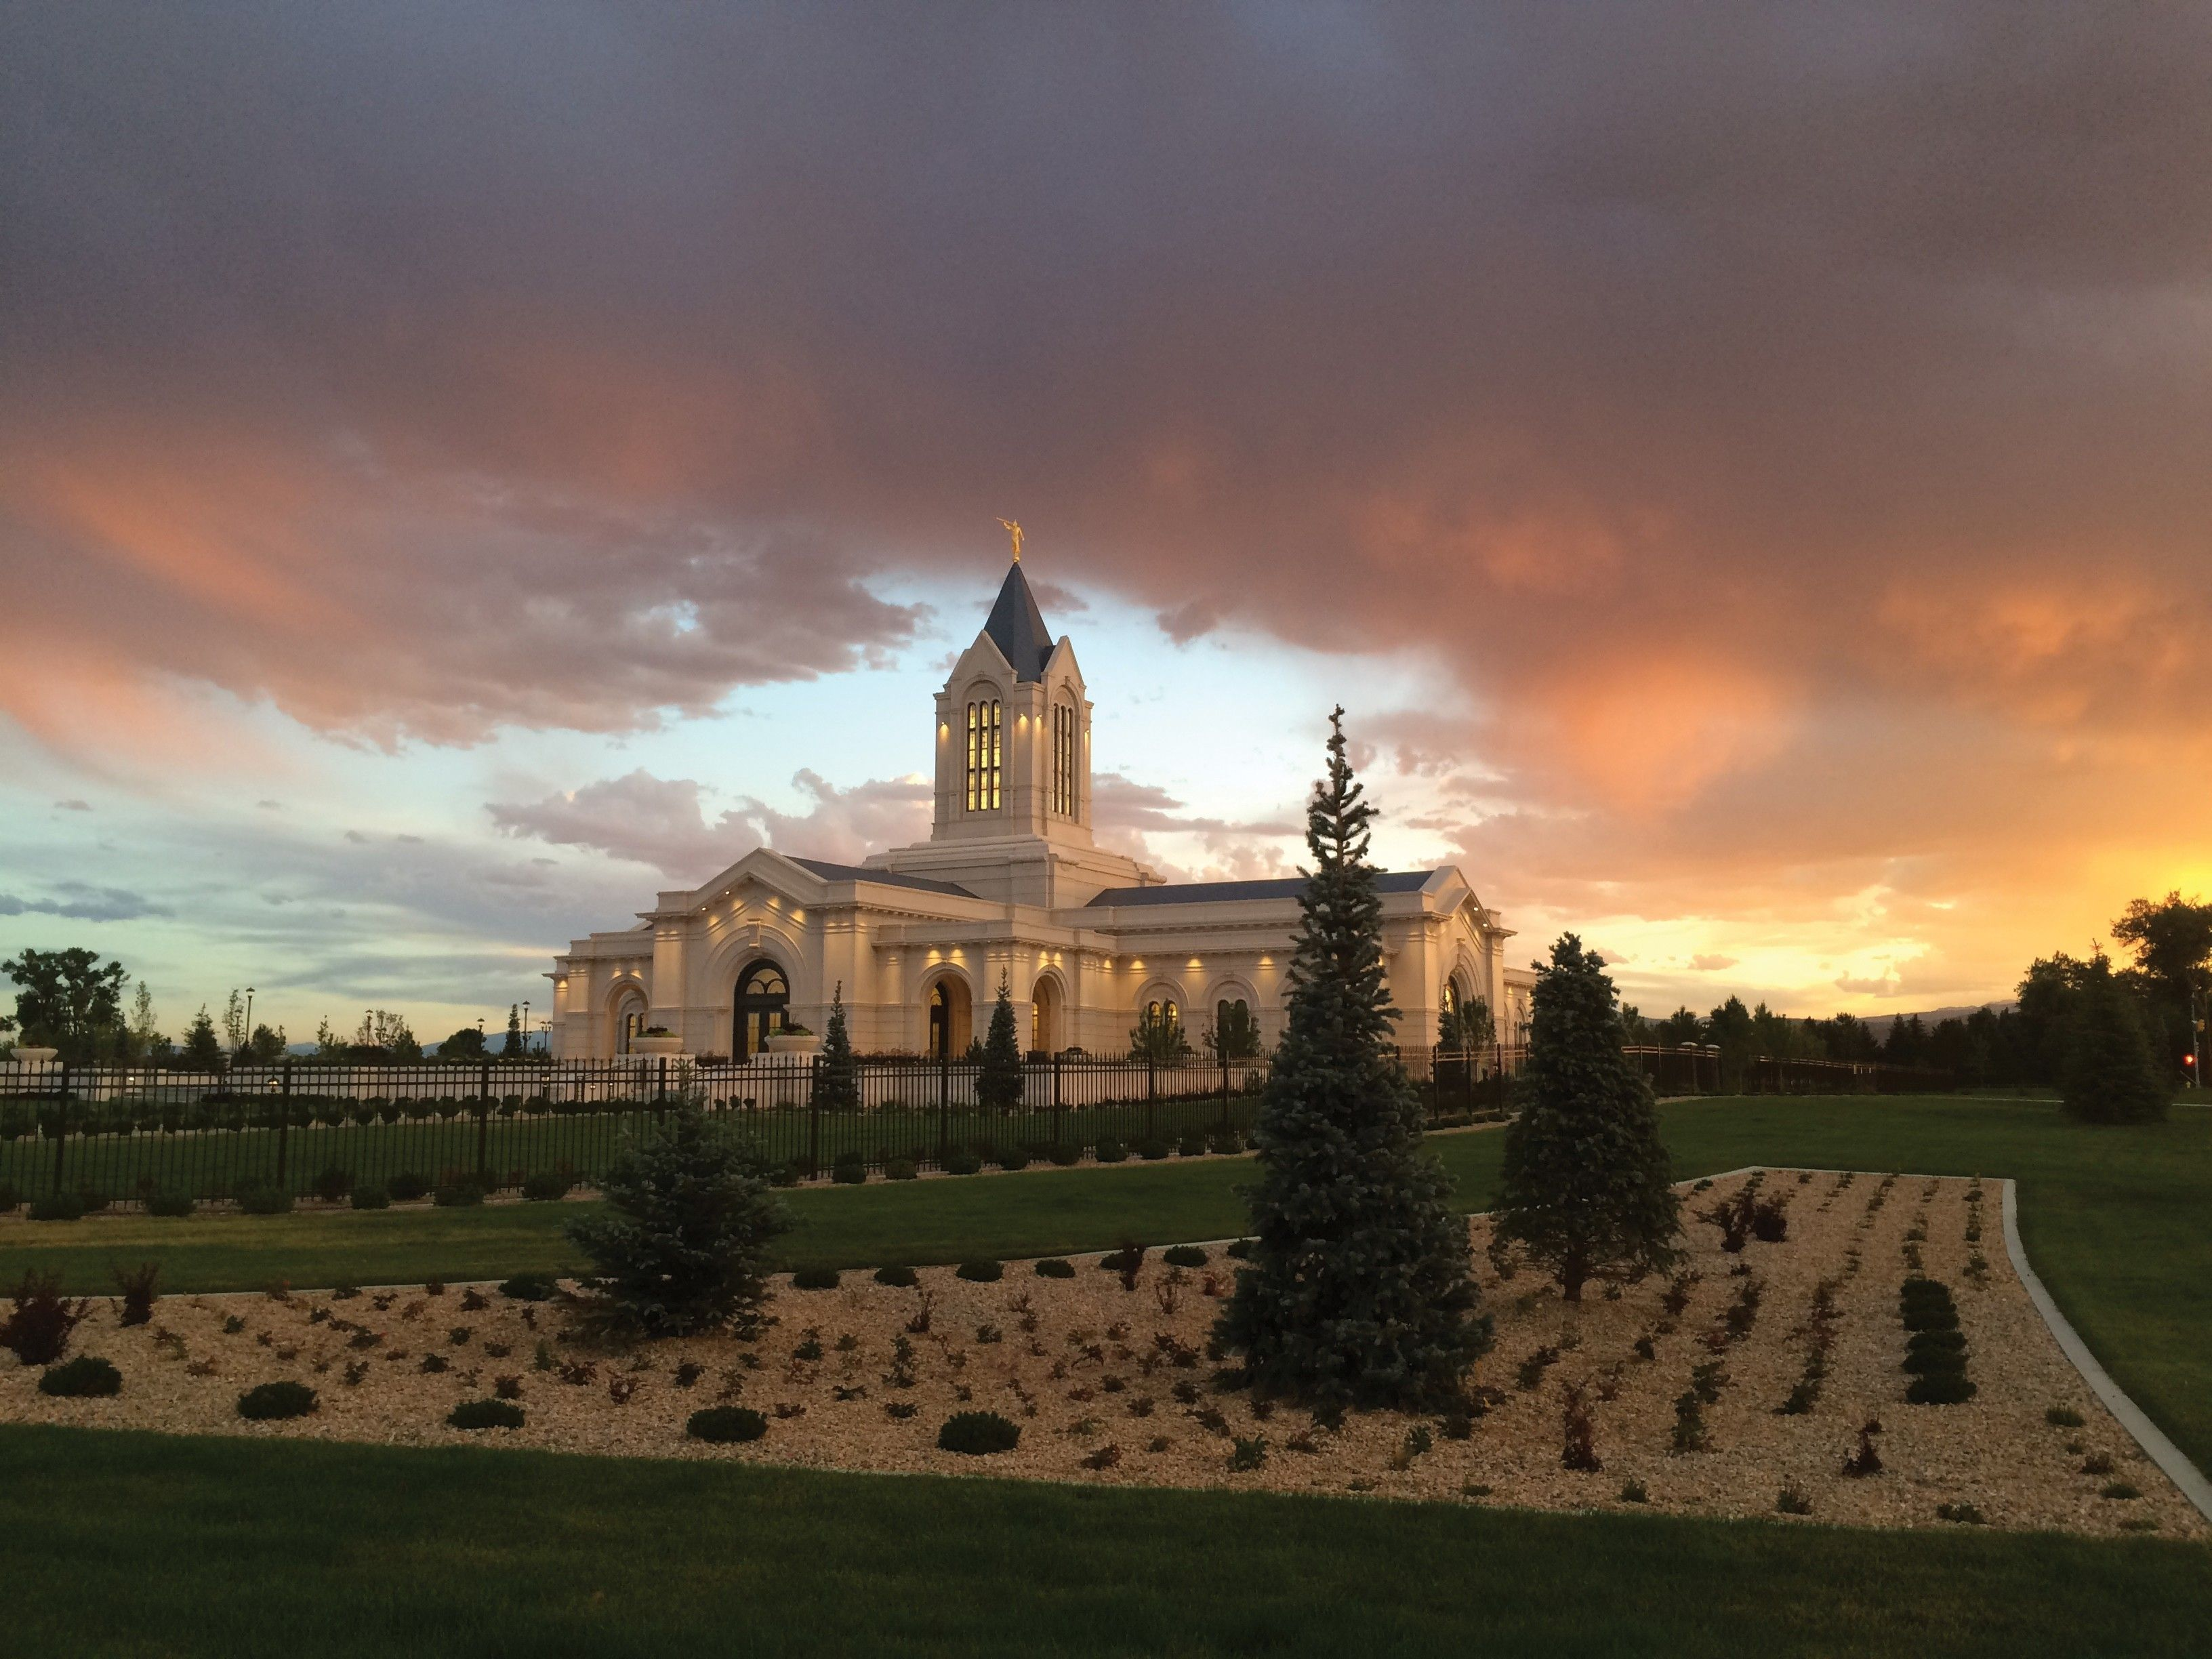 An exterior view of the Fort Collins Colorado Temple at sunset.